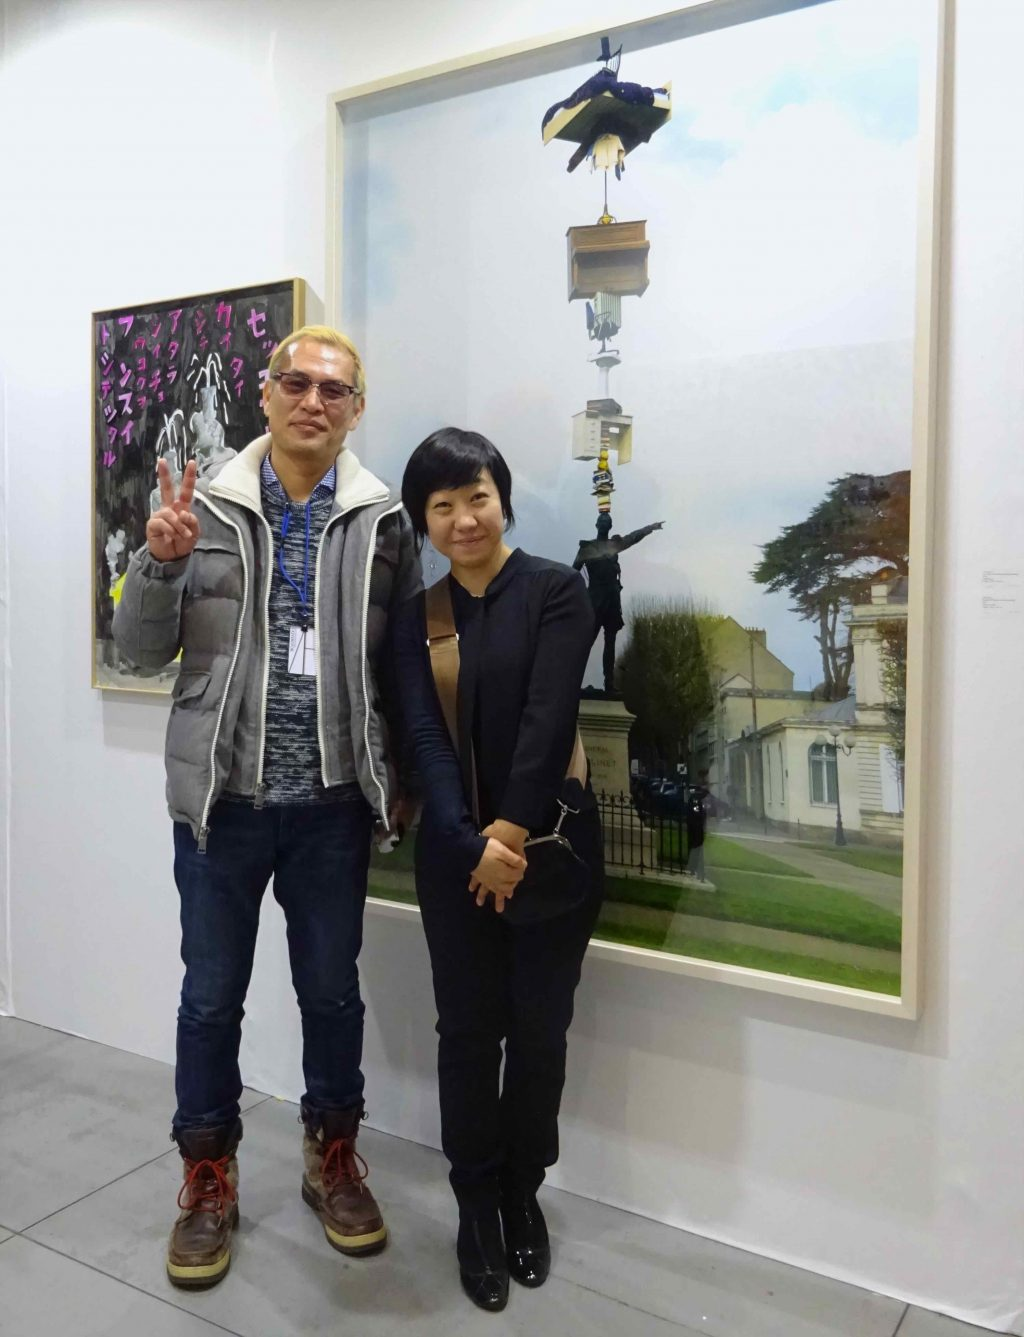 URANO Gallery owner URANO Mutsumi 浦野むつみ celebrating together with her artist NISHI Tatsu 西野達, as he just received the Minister of Education and Culture Award for Fine Arts 芸術選奨文部科学大臣賞受賞